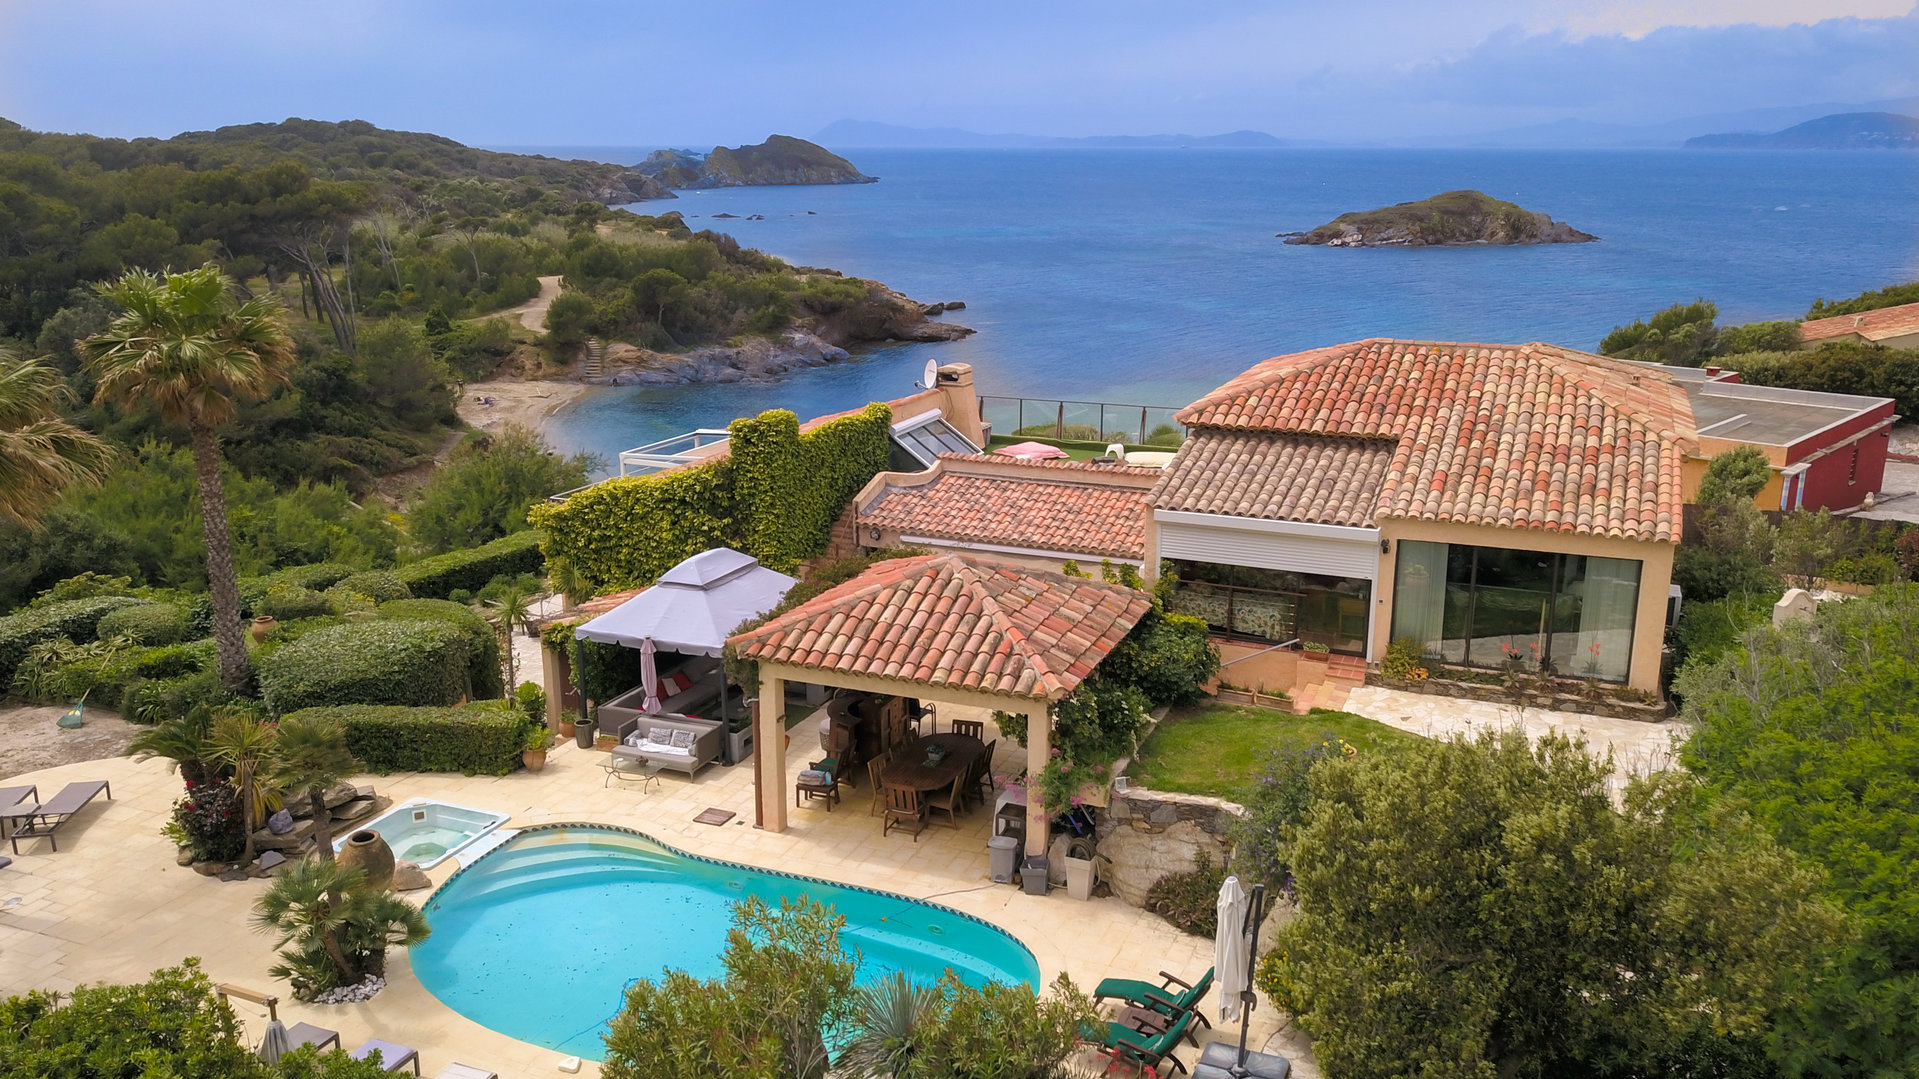 6 BEDROOM WATERFRONT FOR SALE IN GIENS